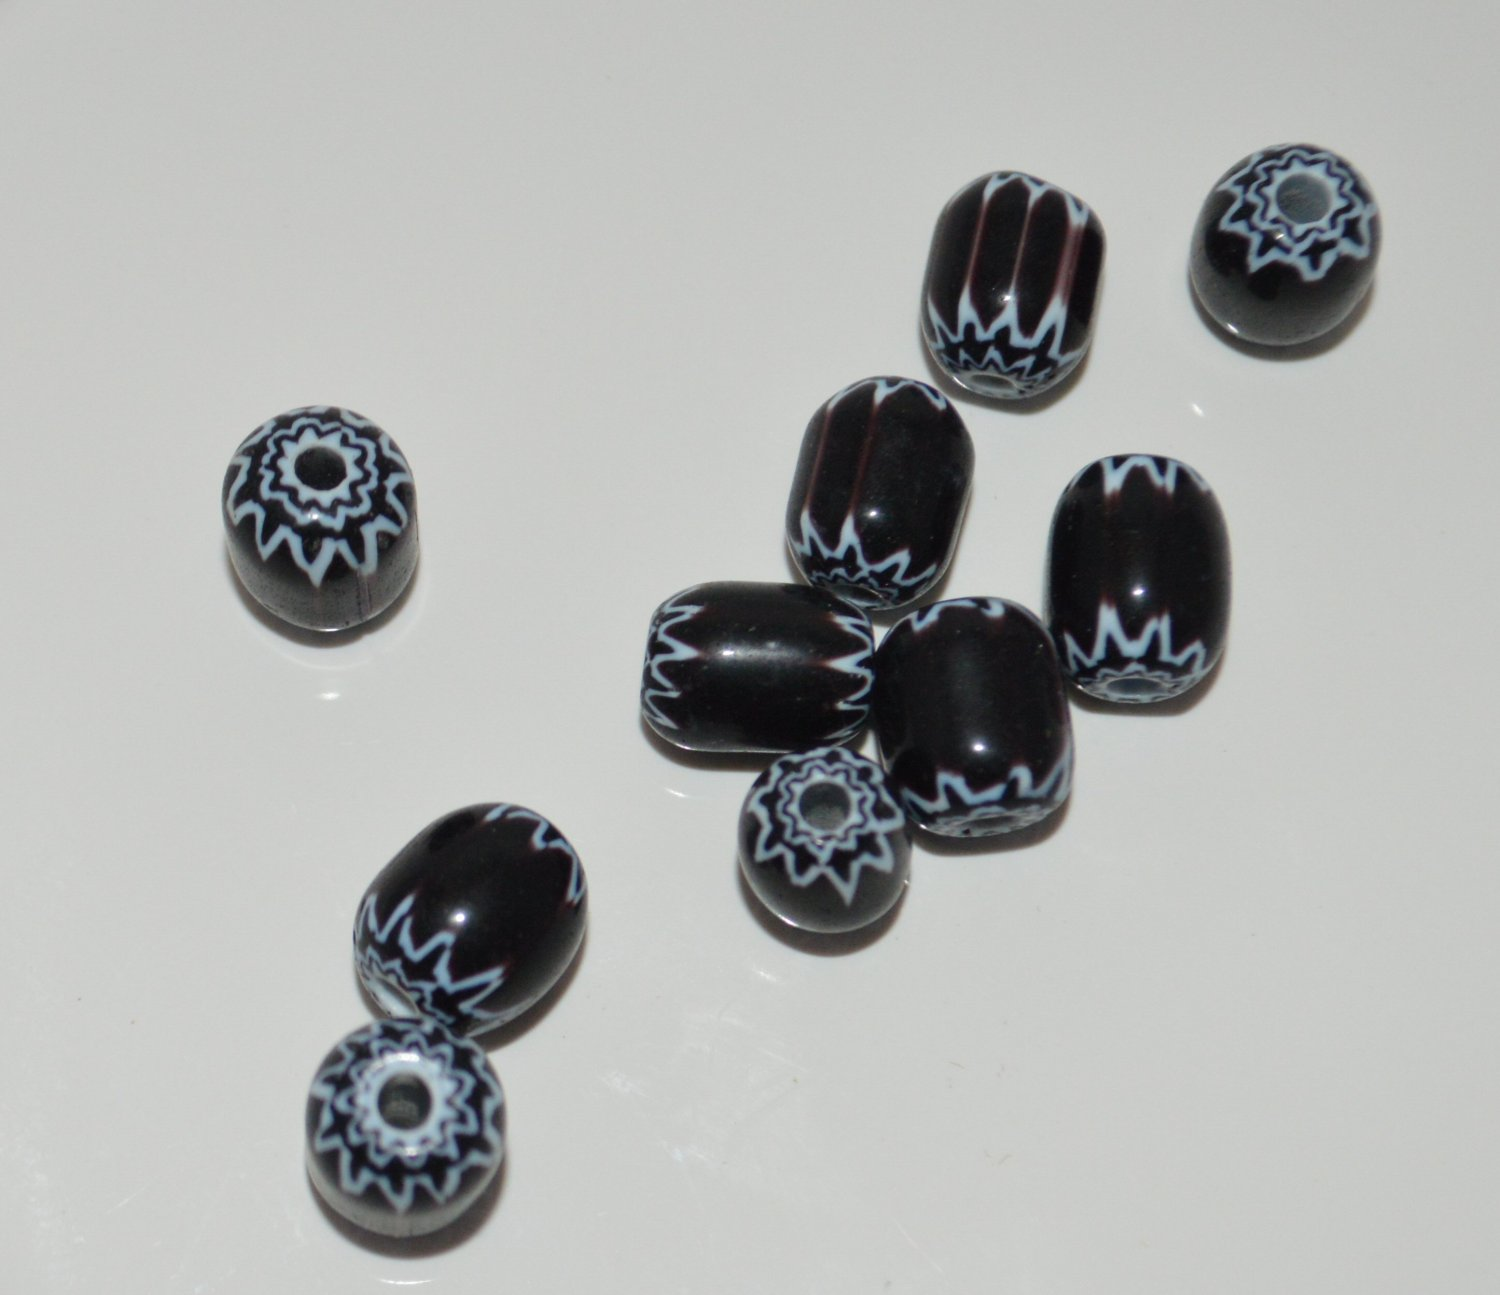 10 Stylish Black and White Handcrafted Glass Beads 10.5 MM x 9MM